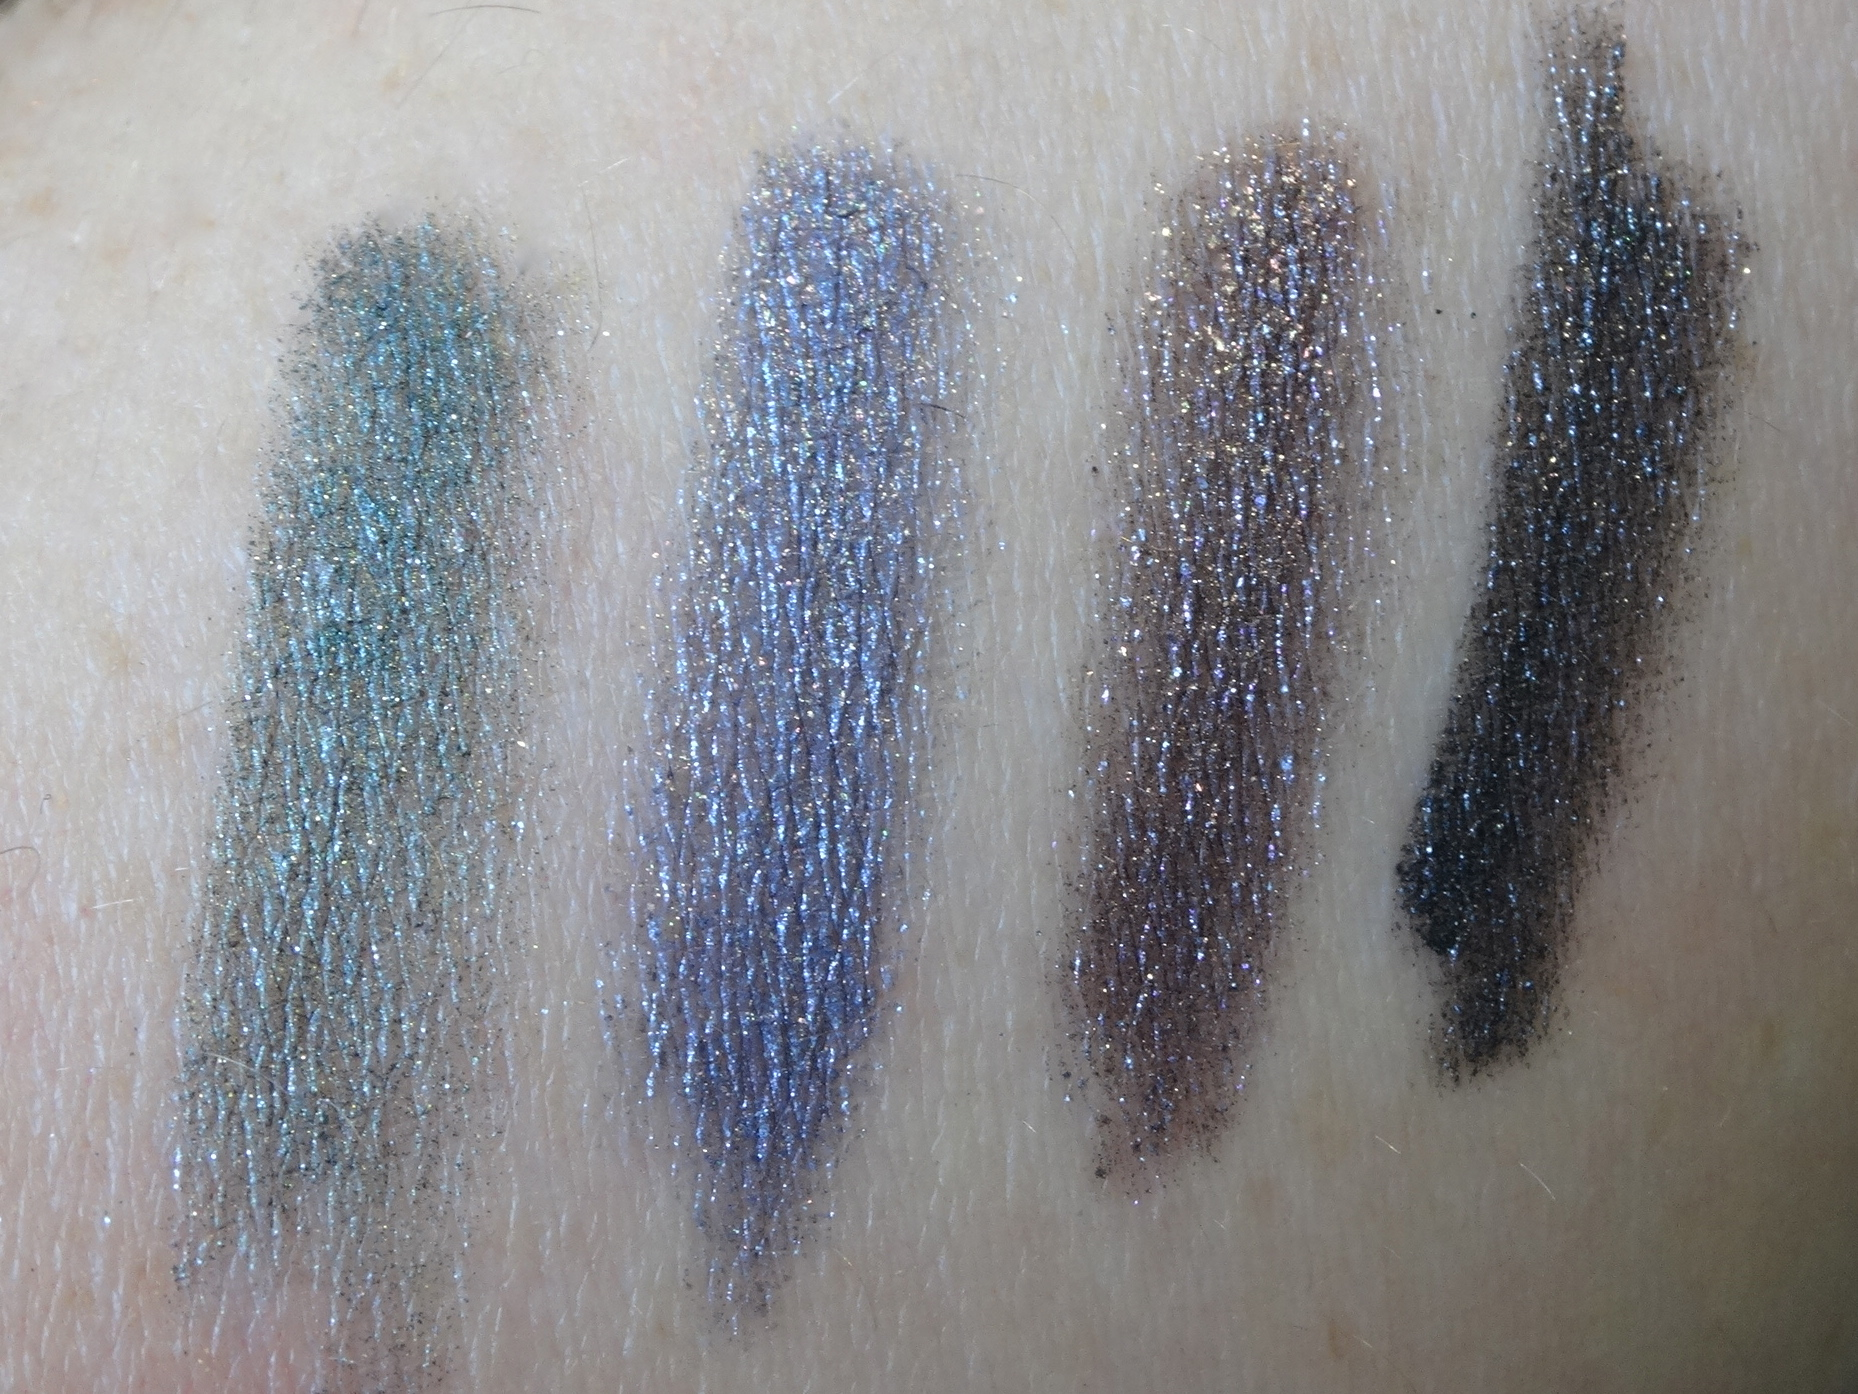 Swatch GOSH Forever Eyeshadow 08 green, 07 blue, 06 plum, 05 grey